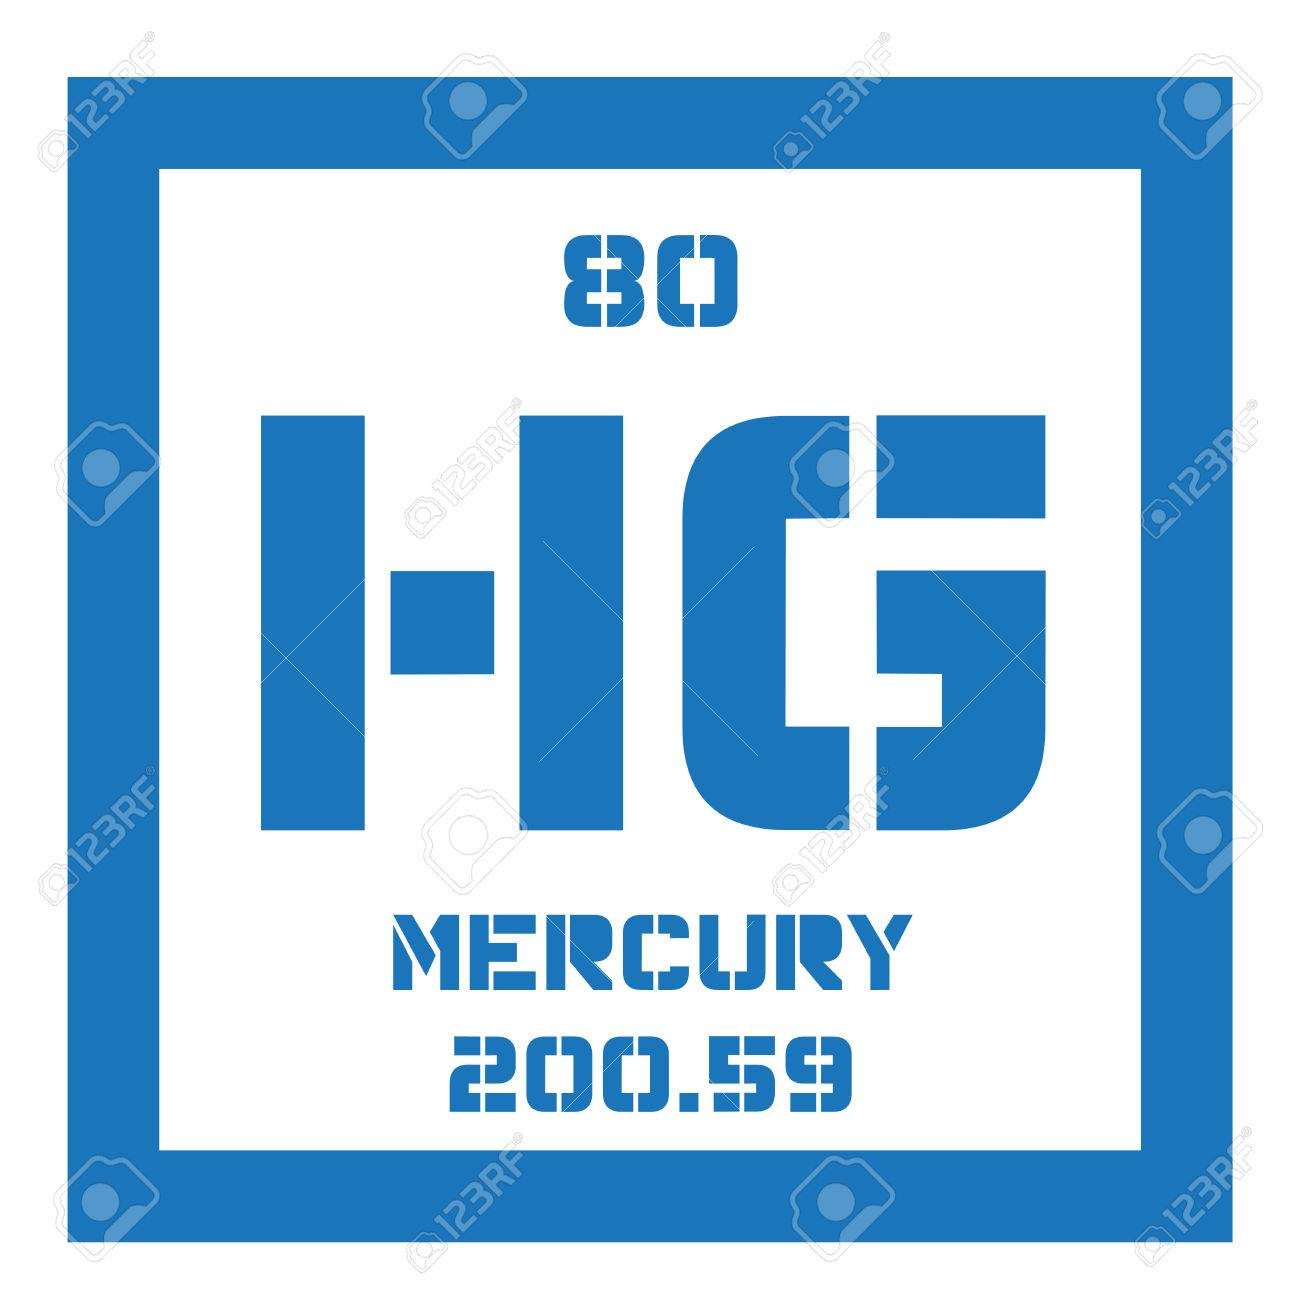 Periodic table symbol for mercury image collections periodic what is the abbreviation for mercury on periodic table mercury periodic table symbol choice image images gamestrikefo Images